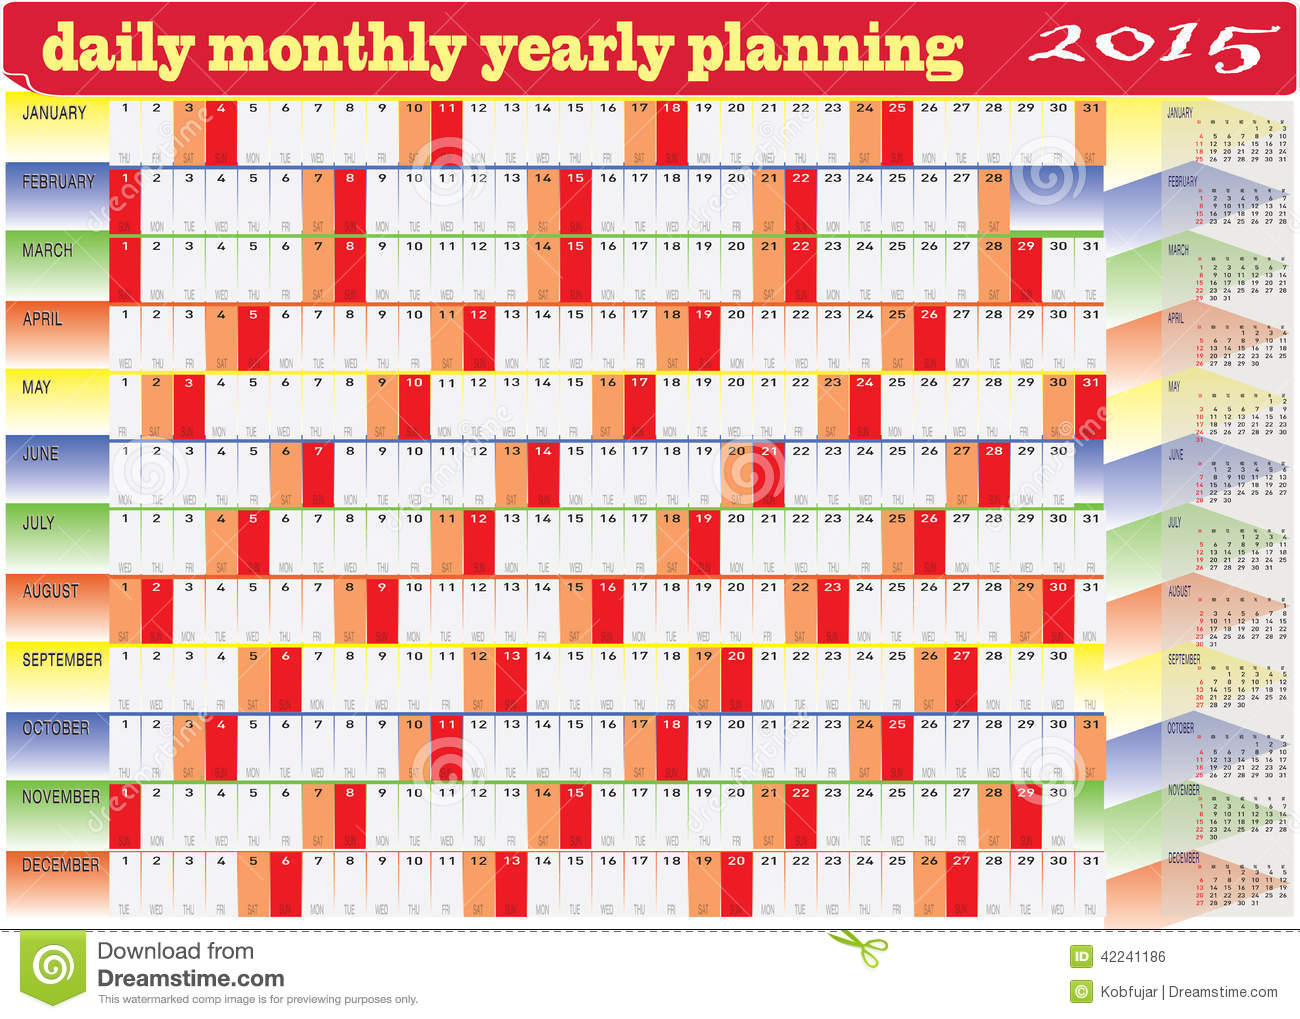 Monthly Calendar Year : Daily monthly yearly calendar planning chart stock